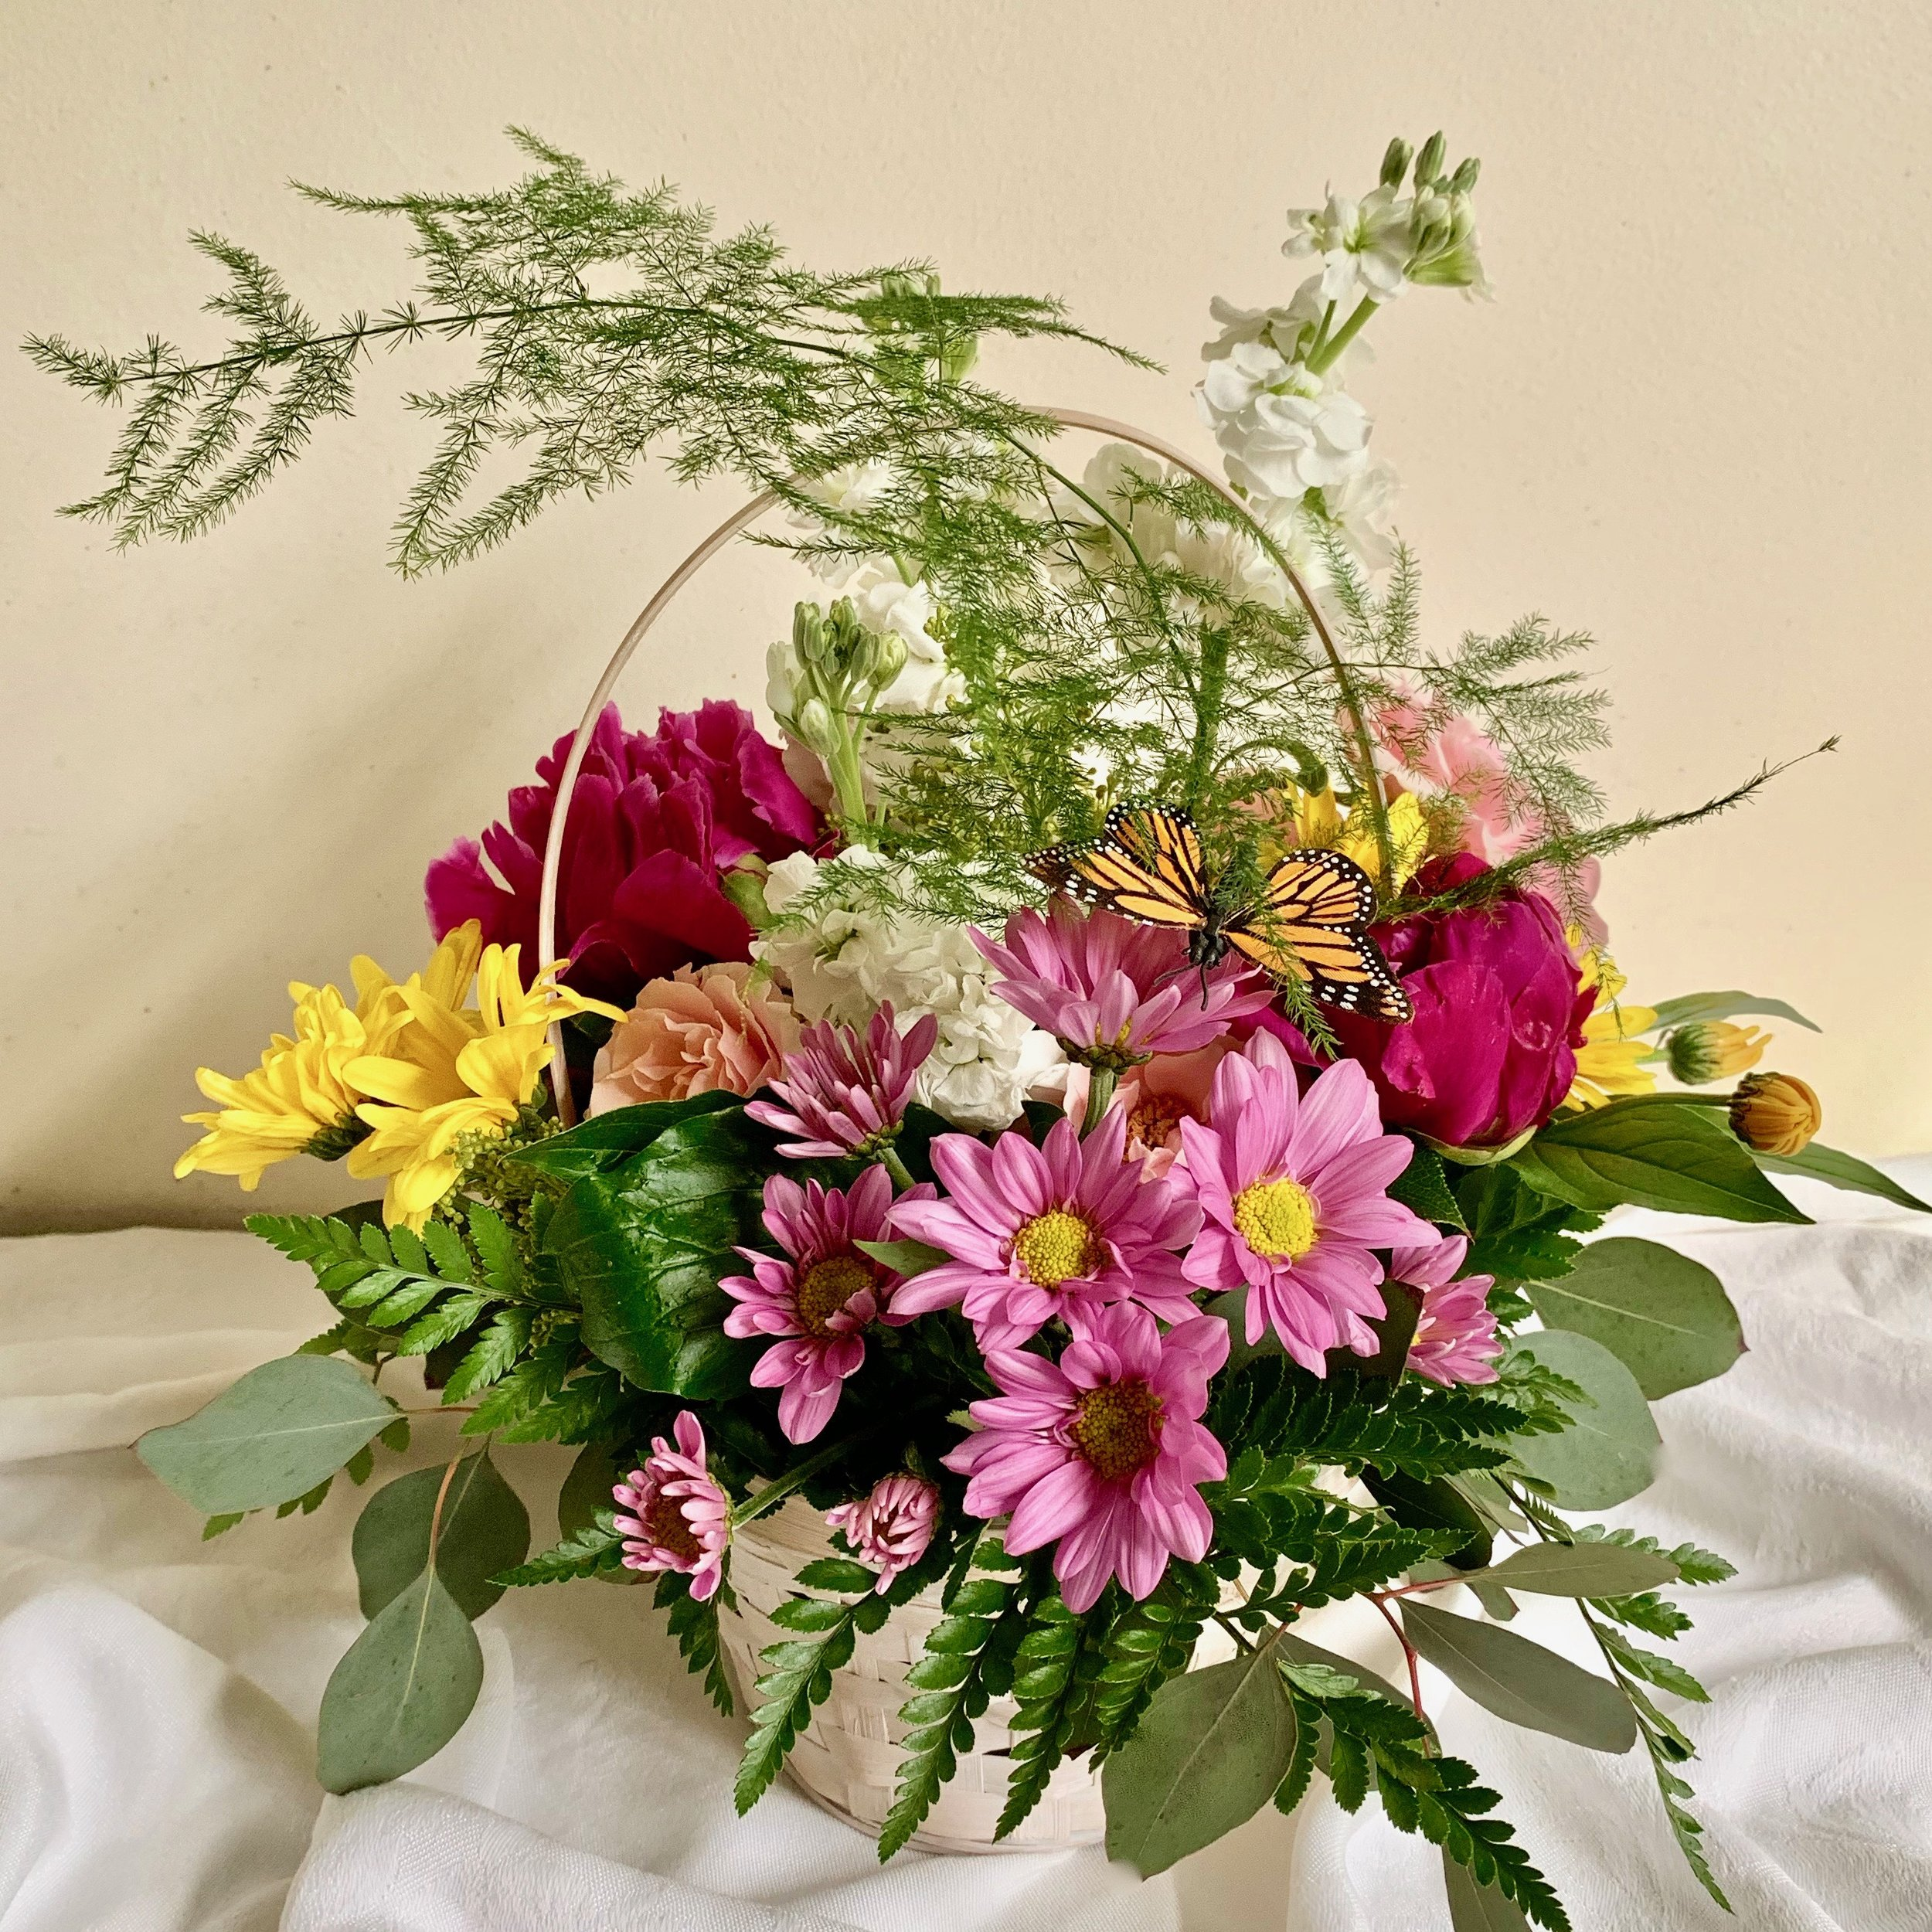 BUTTERFLY BASKET   Colorful daisies, carnations and roses fill a 7 inch basket, $45.